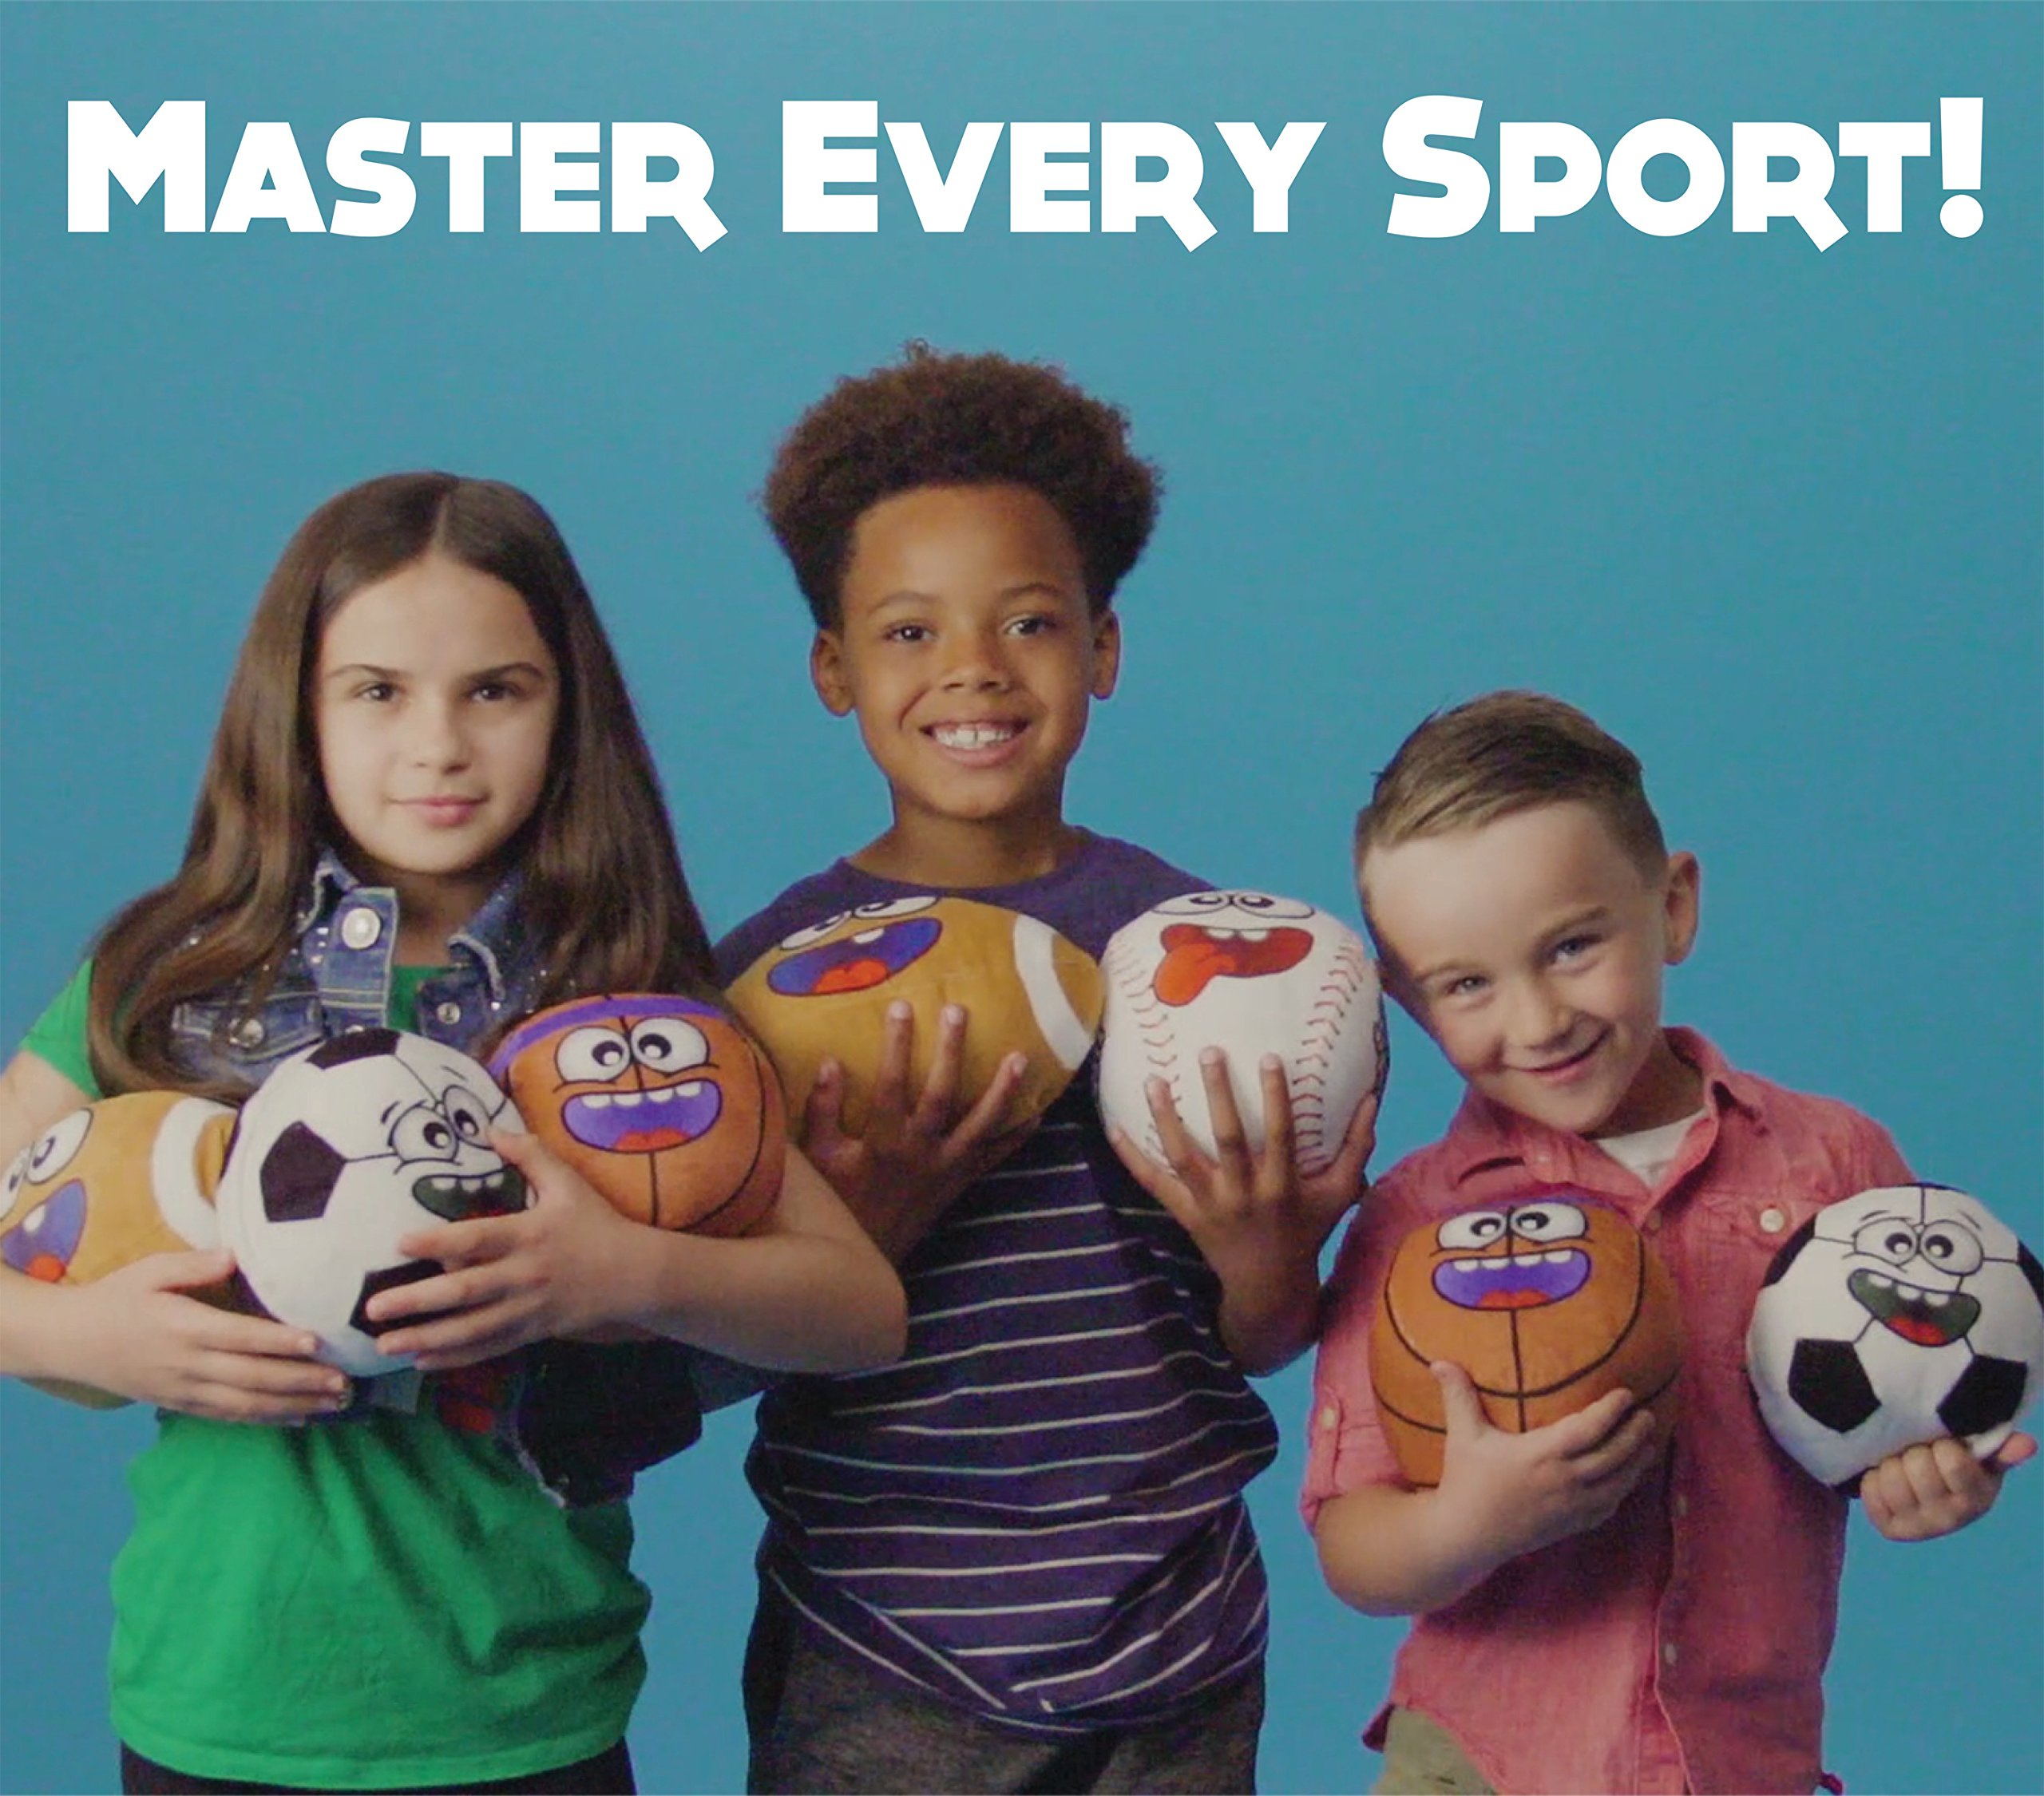 Talkin' Sports Hilariously Interactive Toy Soccer Ball with Music and Sound FX For Kids and Toddlers By Move2Play